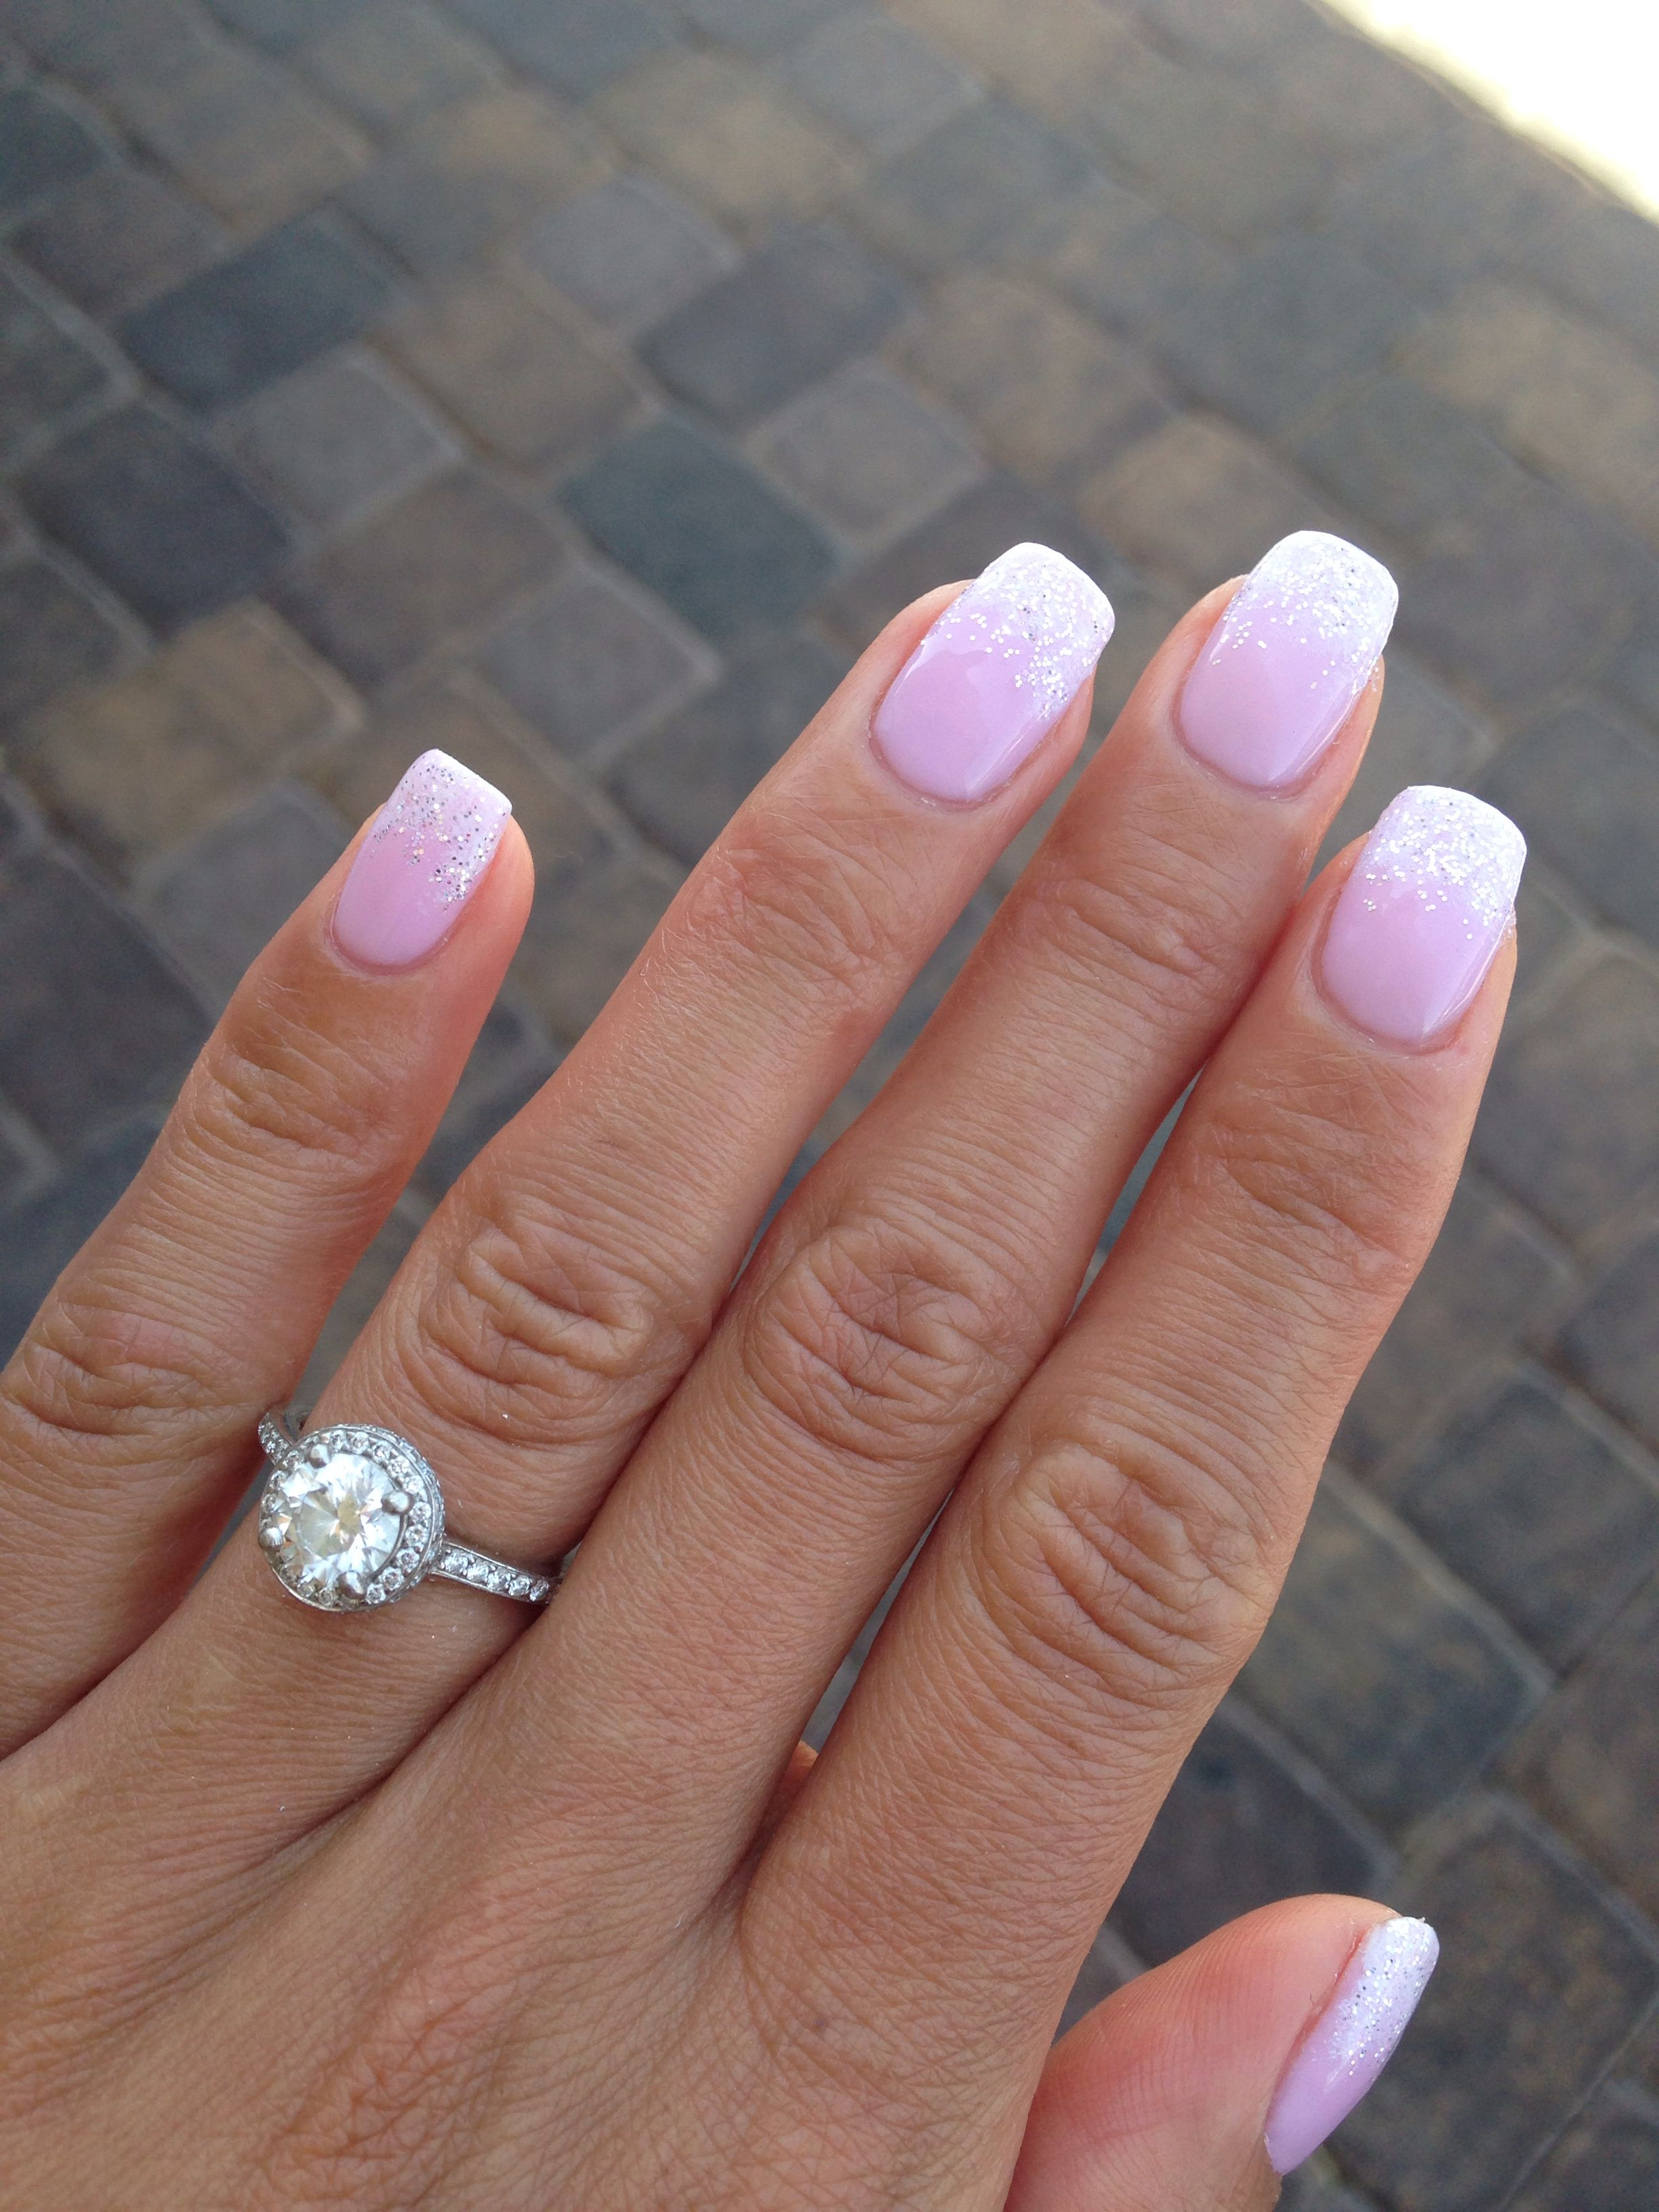 Wedding Day Nails Pink And White French Manicure With Diamond Fade